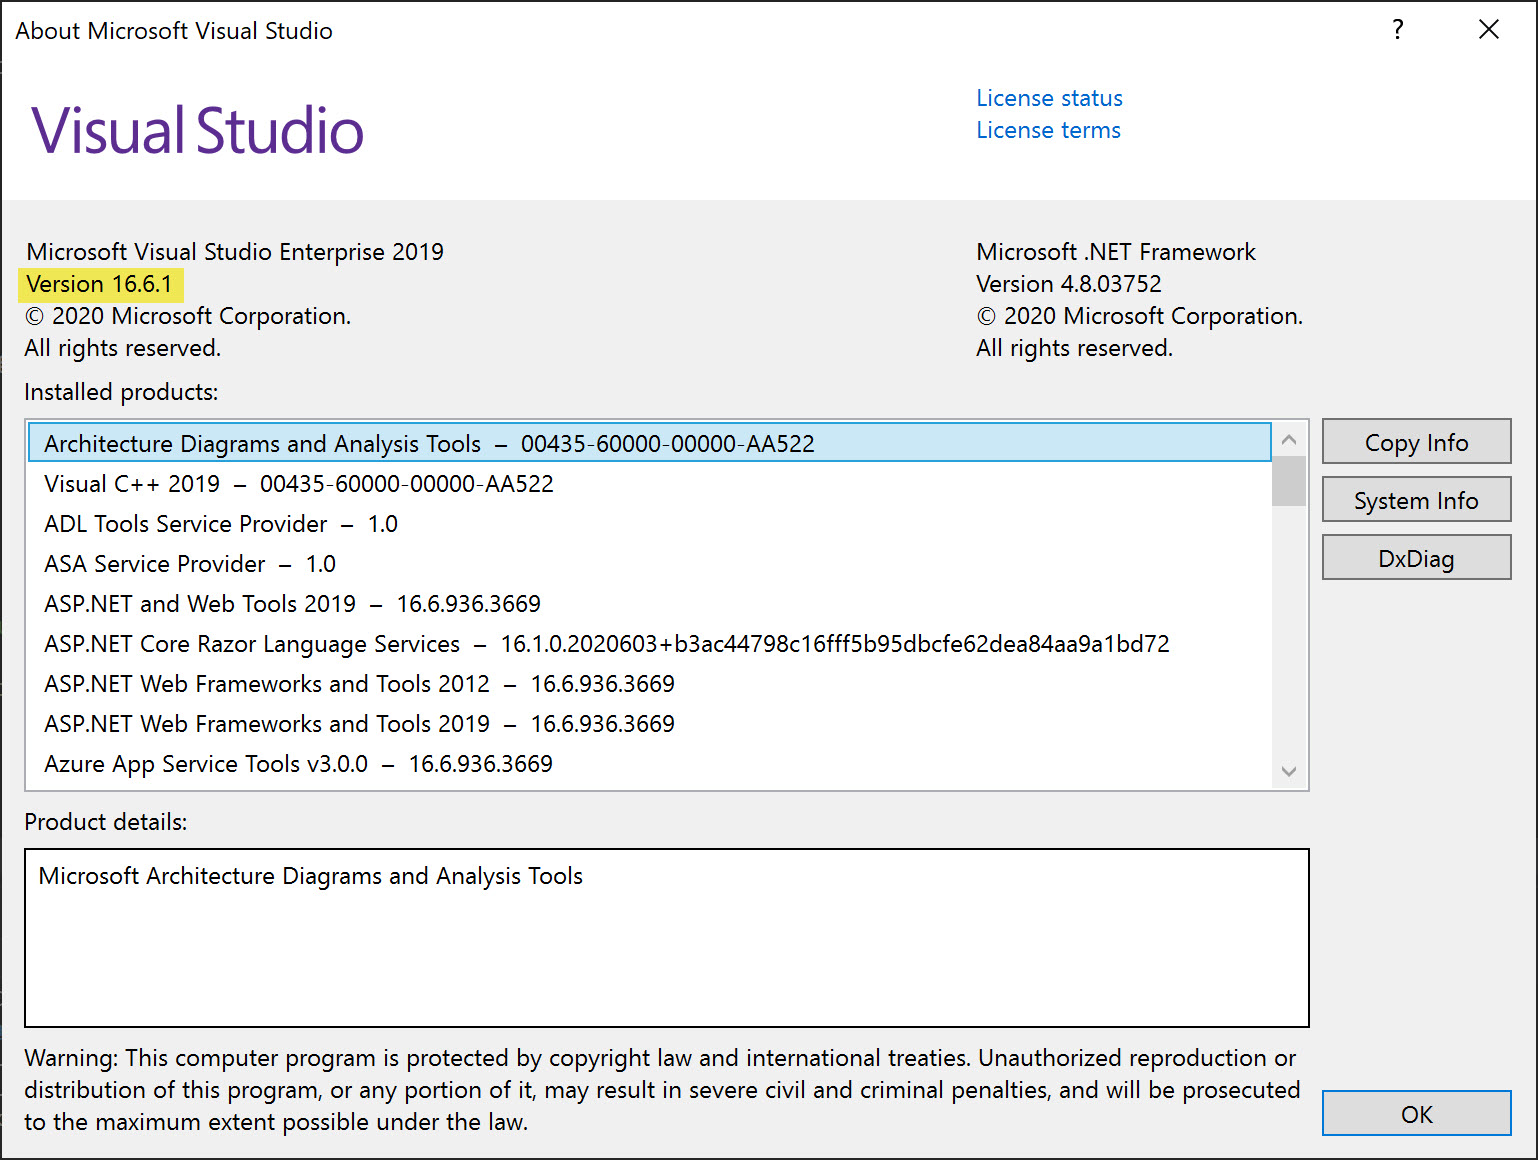 The current Visual Studio version installed is 16.6.1